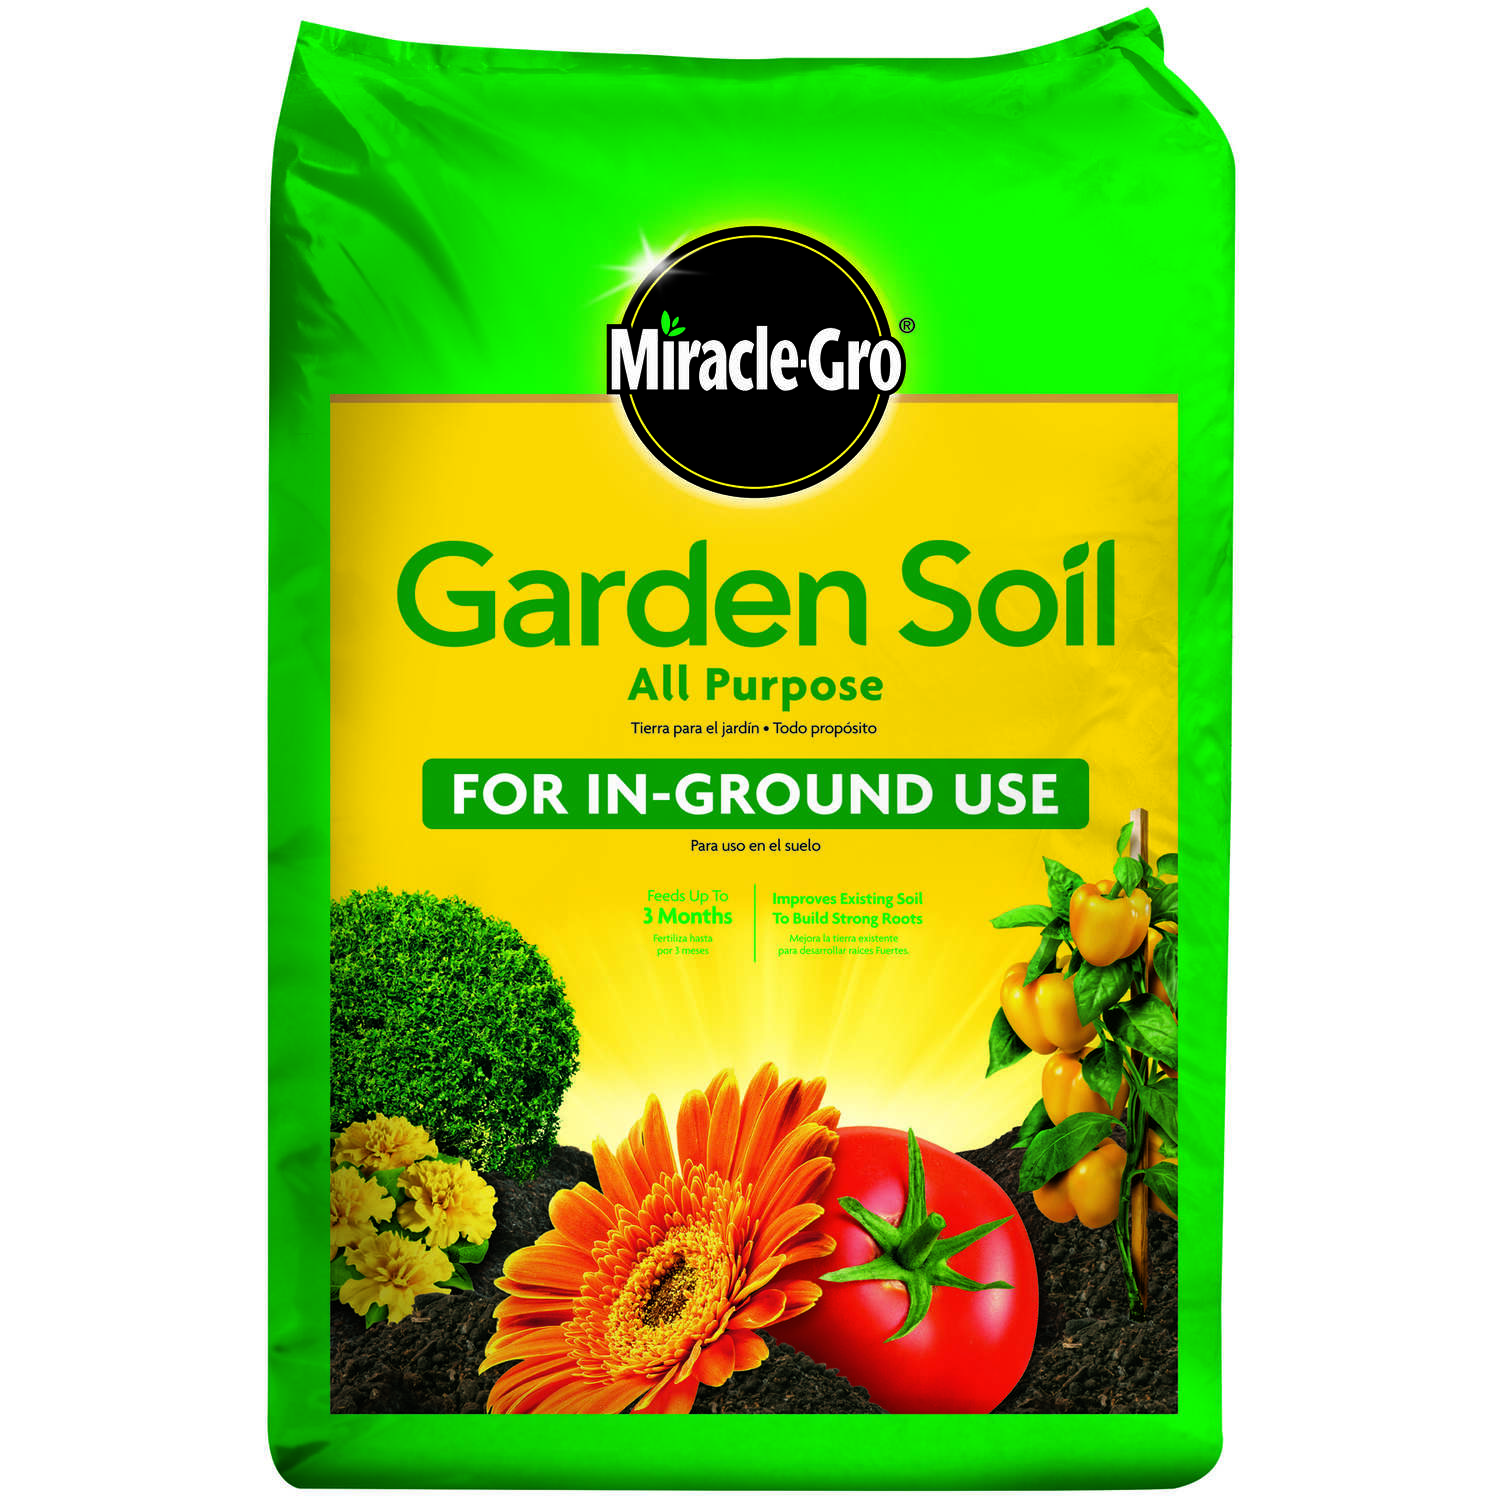 Miracle-Gro  All Purpose for In-Ground Use  Garden Soil  2